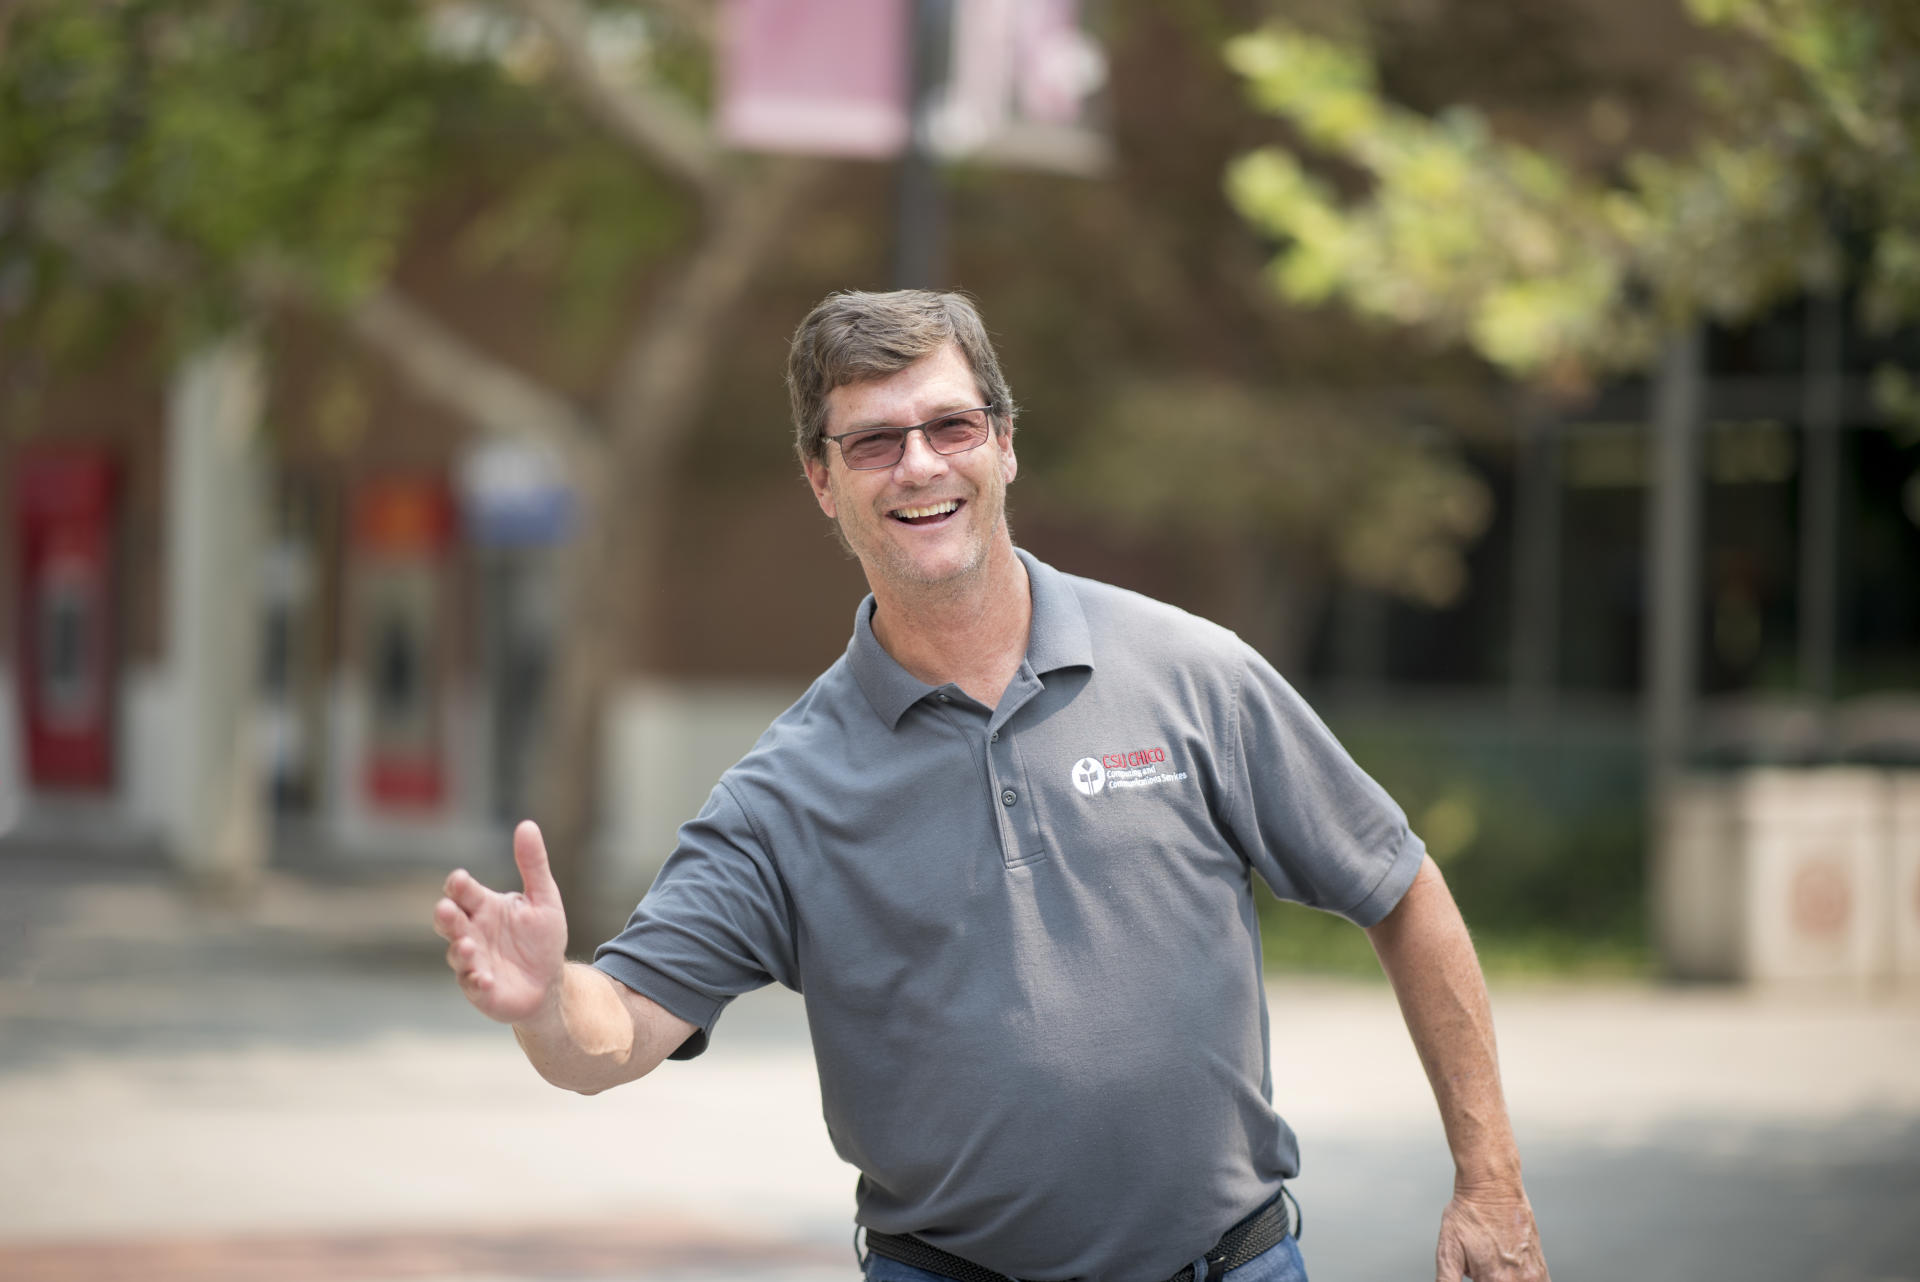 CSU Honors IT Specialist as Emerging Technology Leader